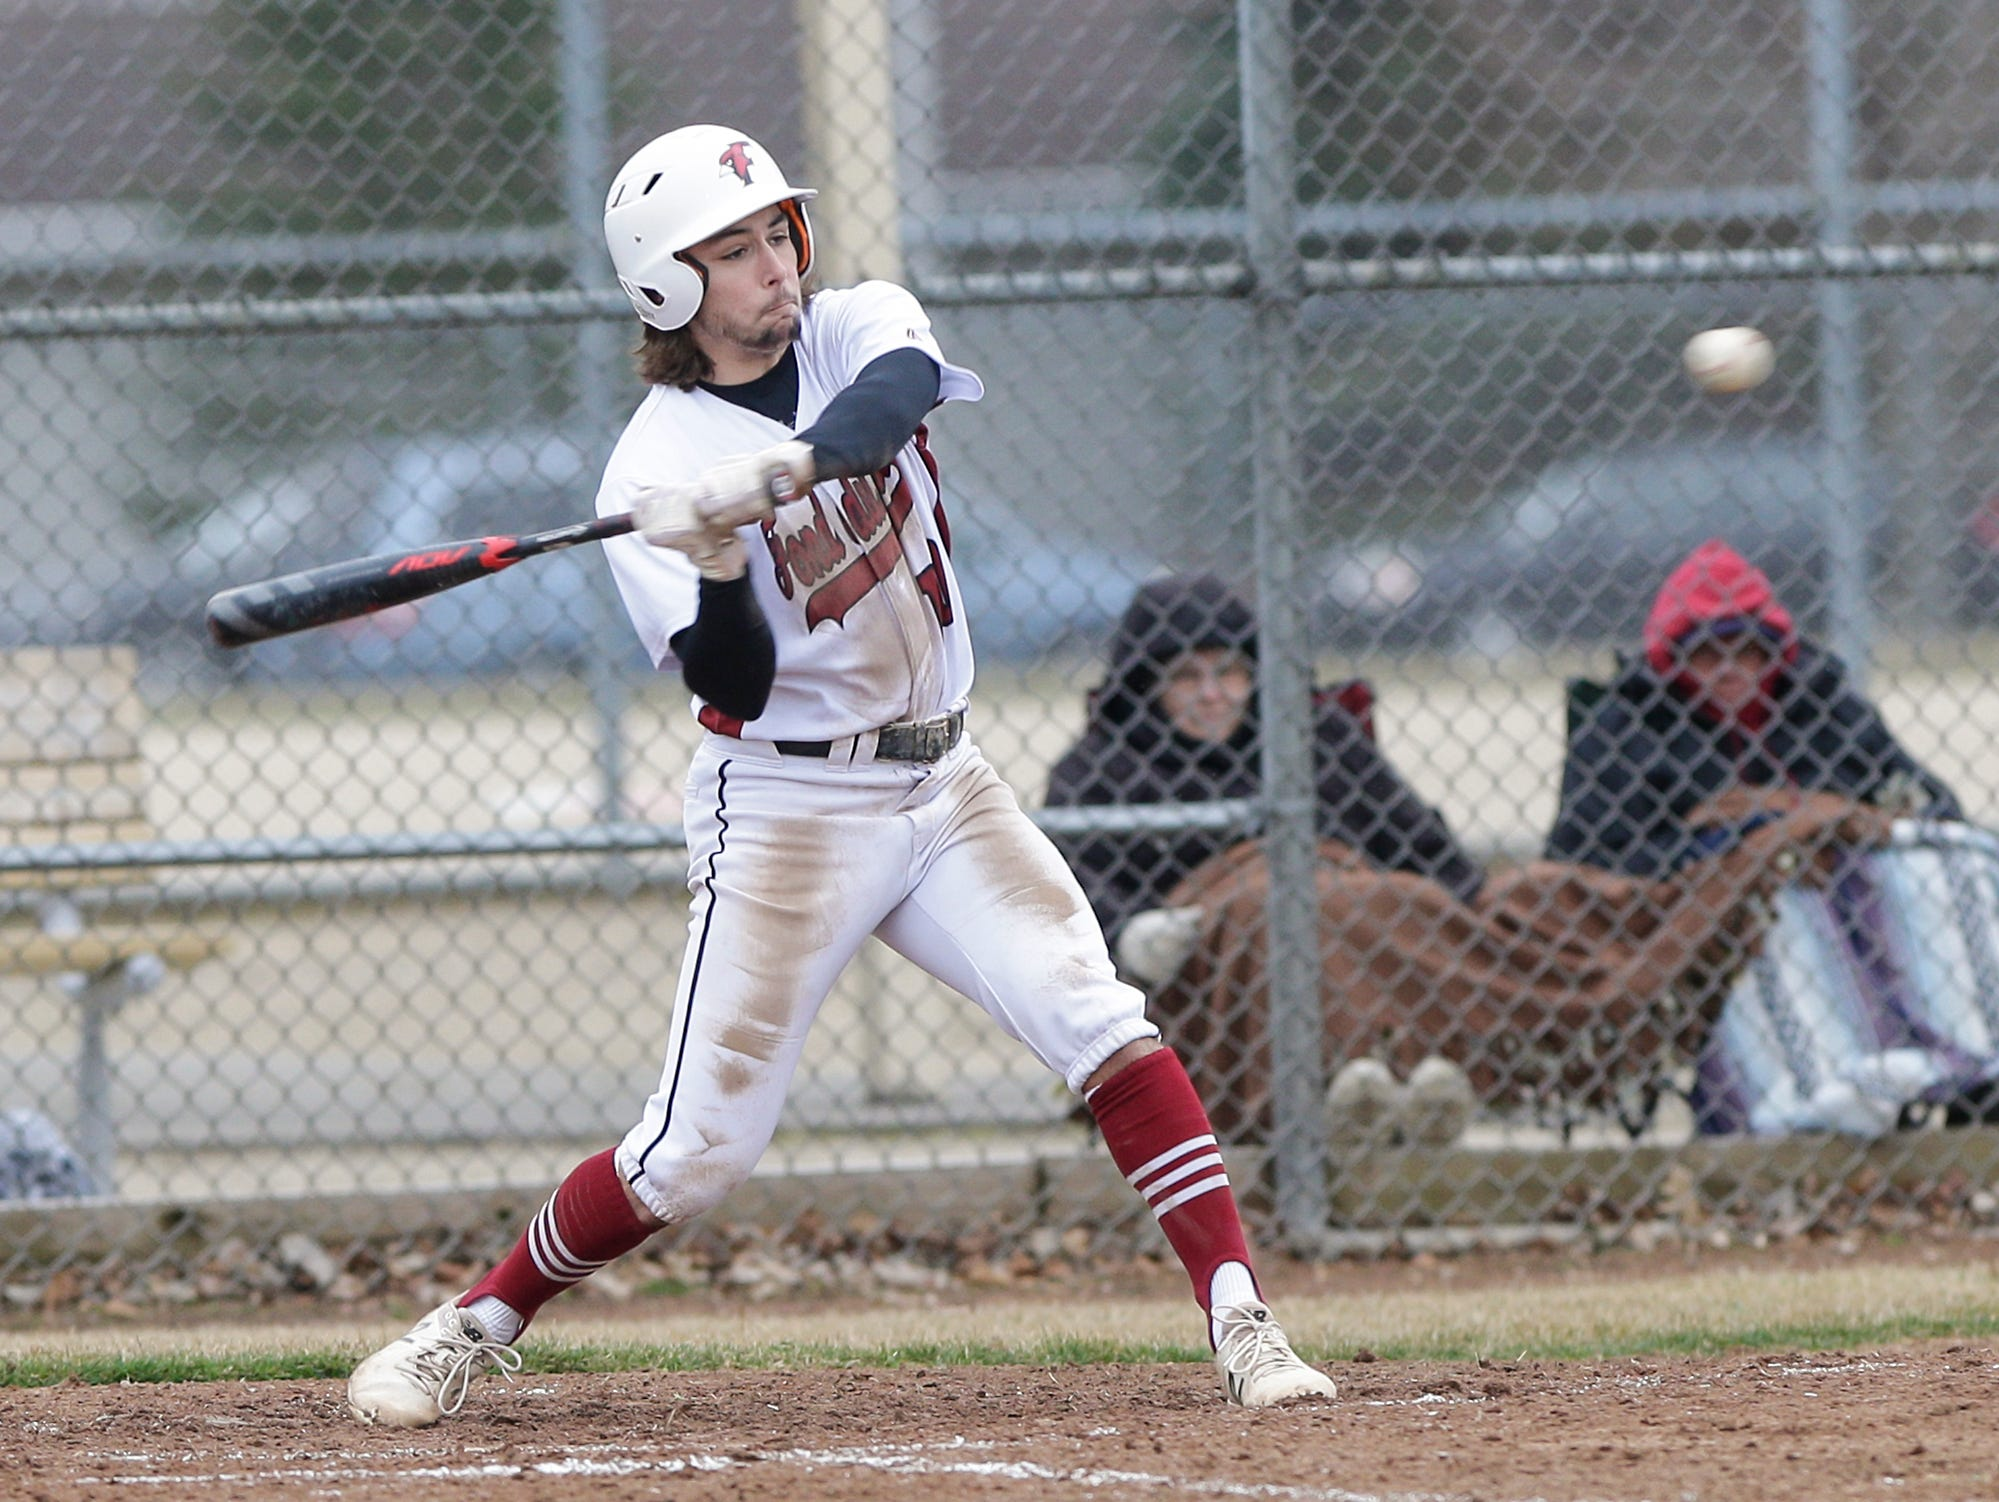 Fond du Lac High School baseball's River Reifsnider swings at a pitch against Neenah High School during their game Thursday, April 18, 2019 in Fond du Lac, Wis. Doug Raflik/USA TODAY NETWORK-Wisconsin